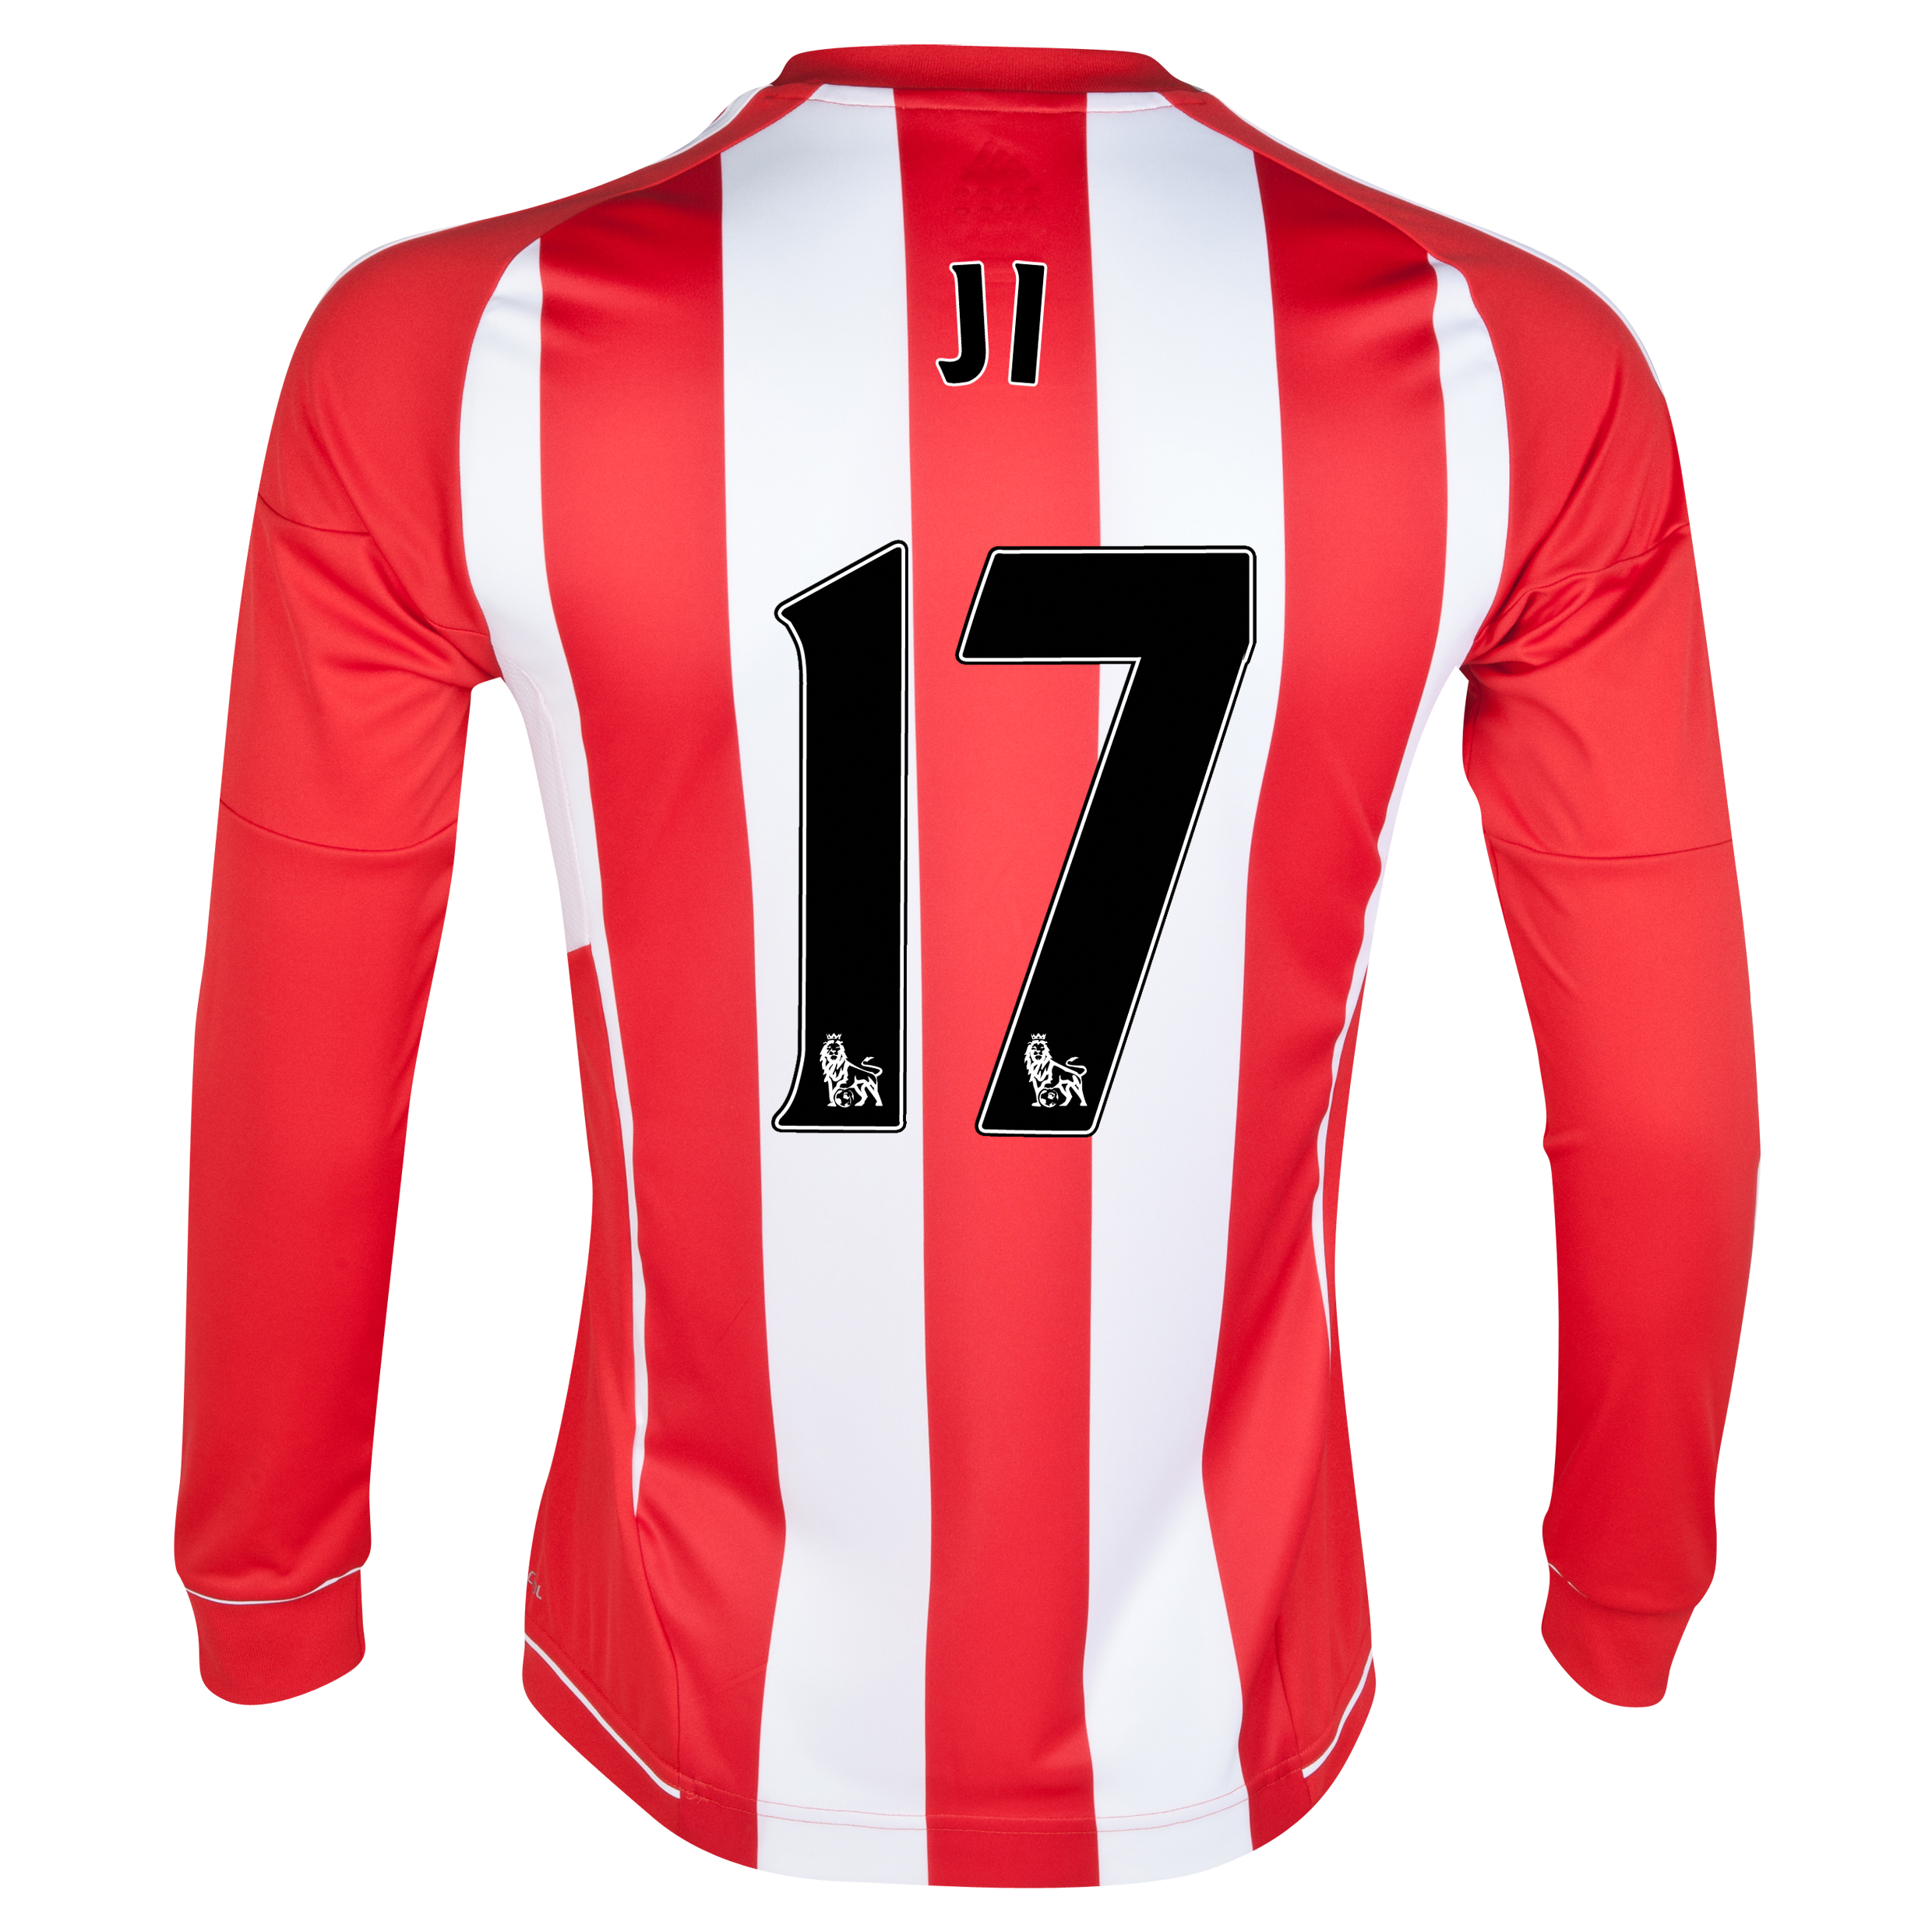 Sunderland Home Shirt 2012/13 - Long Sleeved - Junior with Ji 17 printing